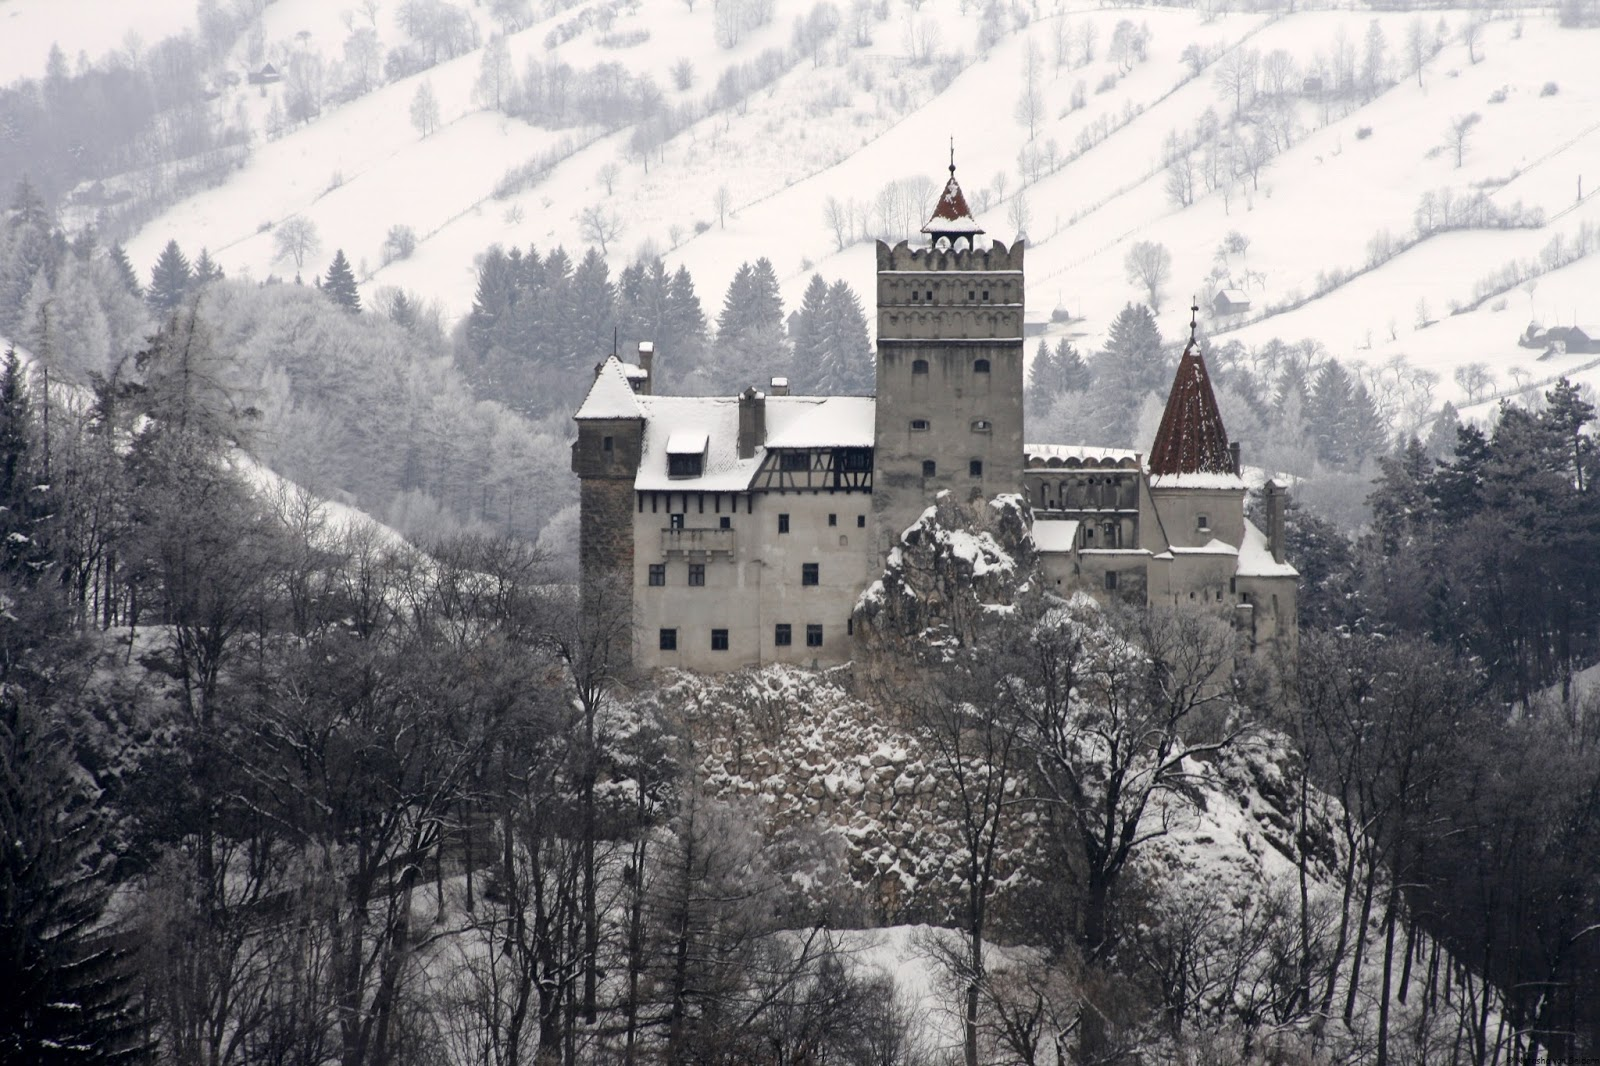 Things About Transylvania Romania Where Can You Find Dracula - 5 things to see and do in transylvania